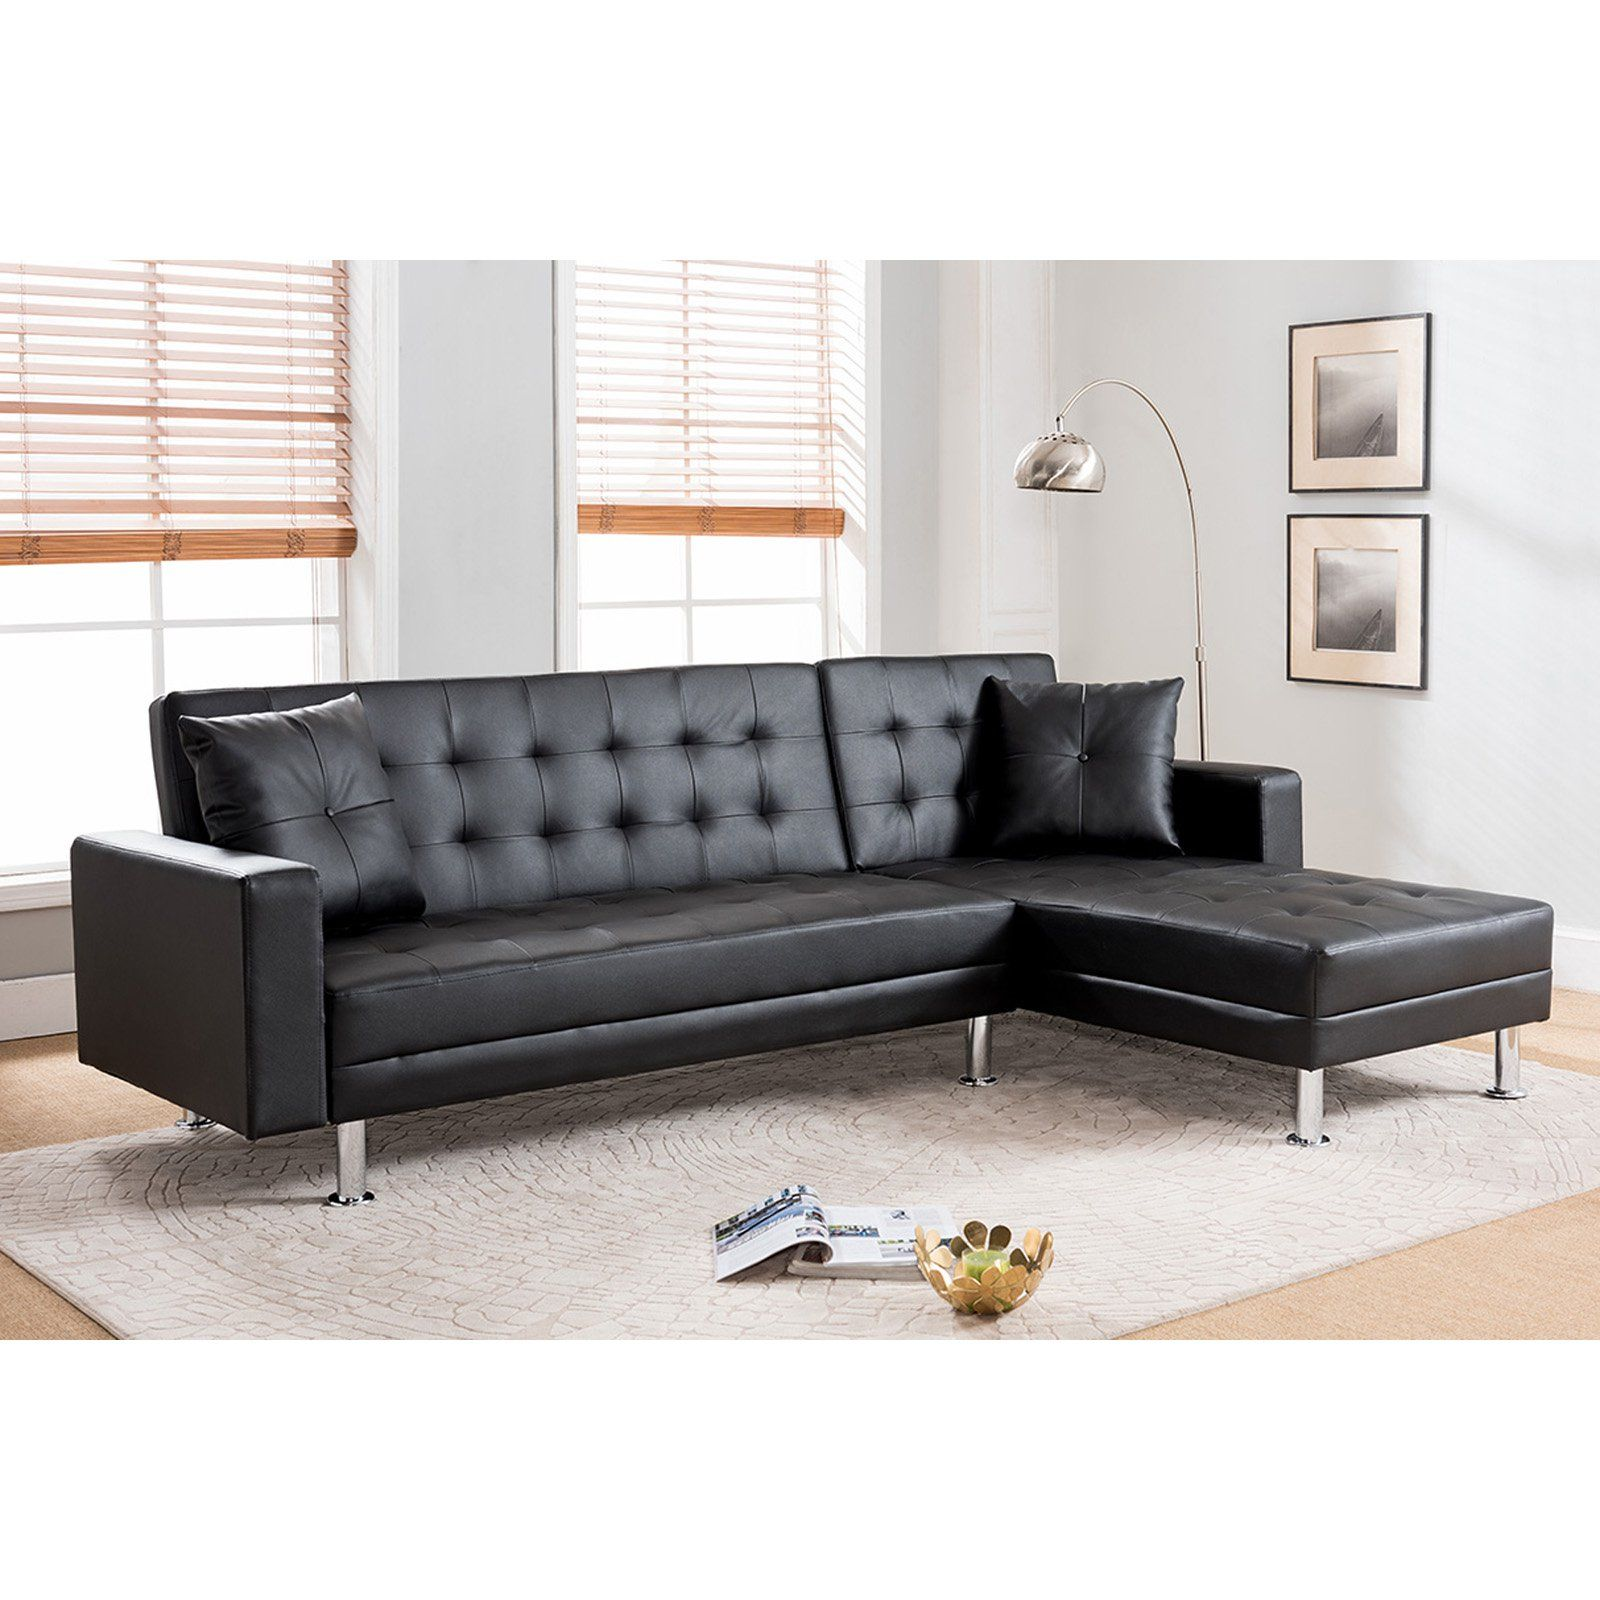 milton greens stars jett reversible chaise sofa bed sectional black rh pinterest com